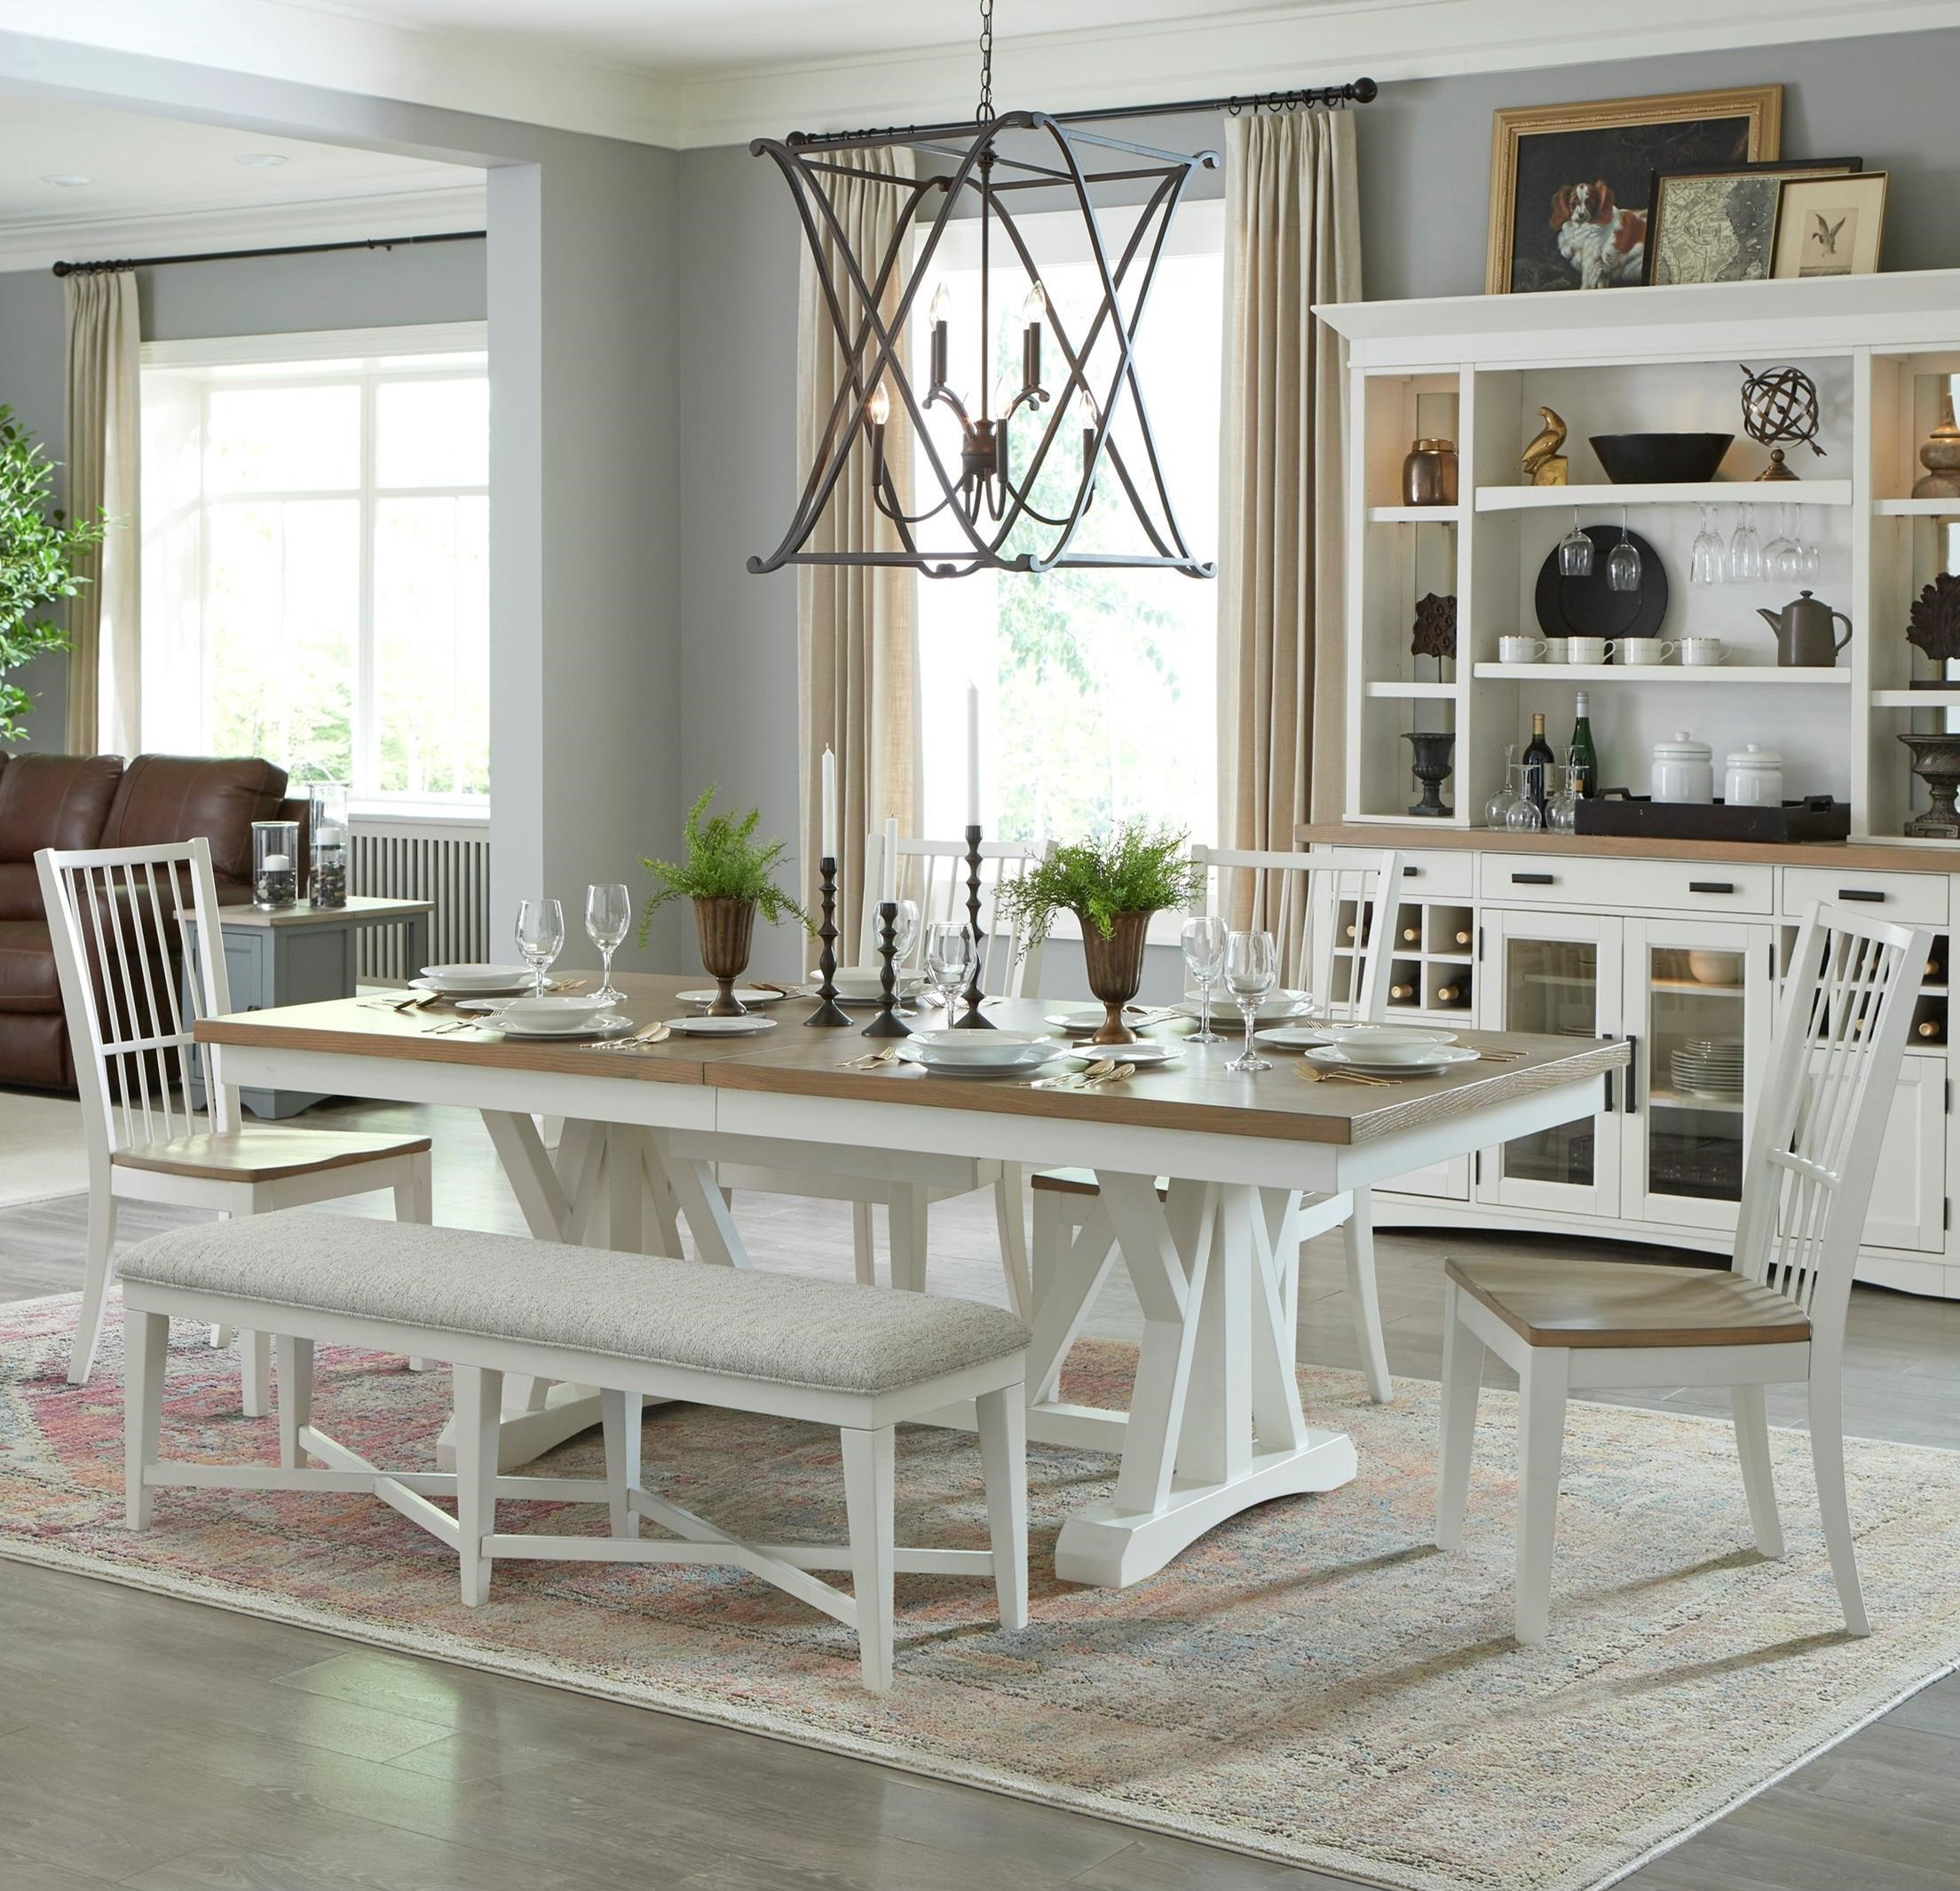 Americana Modern 6-Piece Dining Set with Bench by Parker House at Pilgrim Furniture City